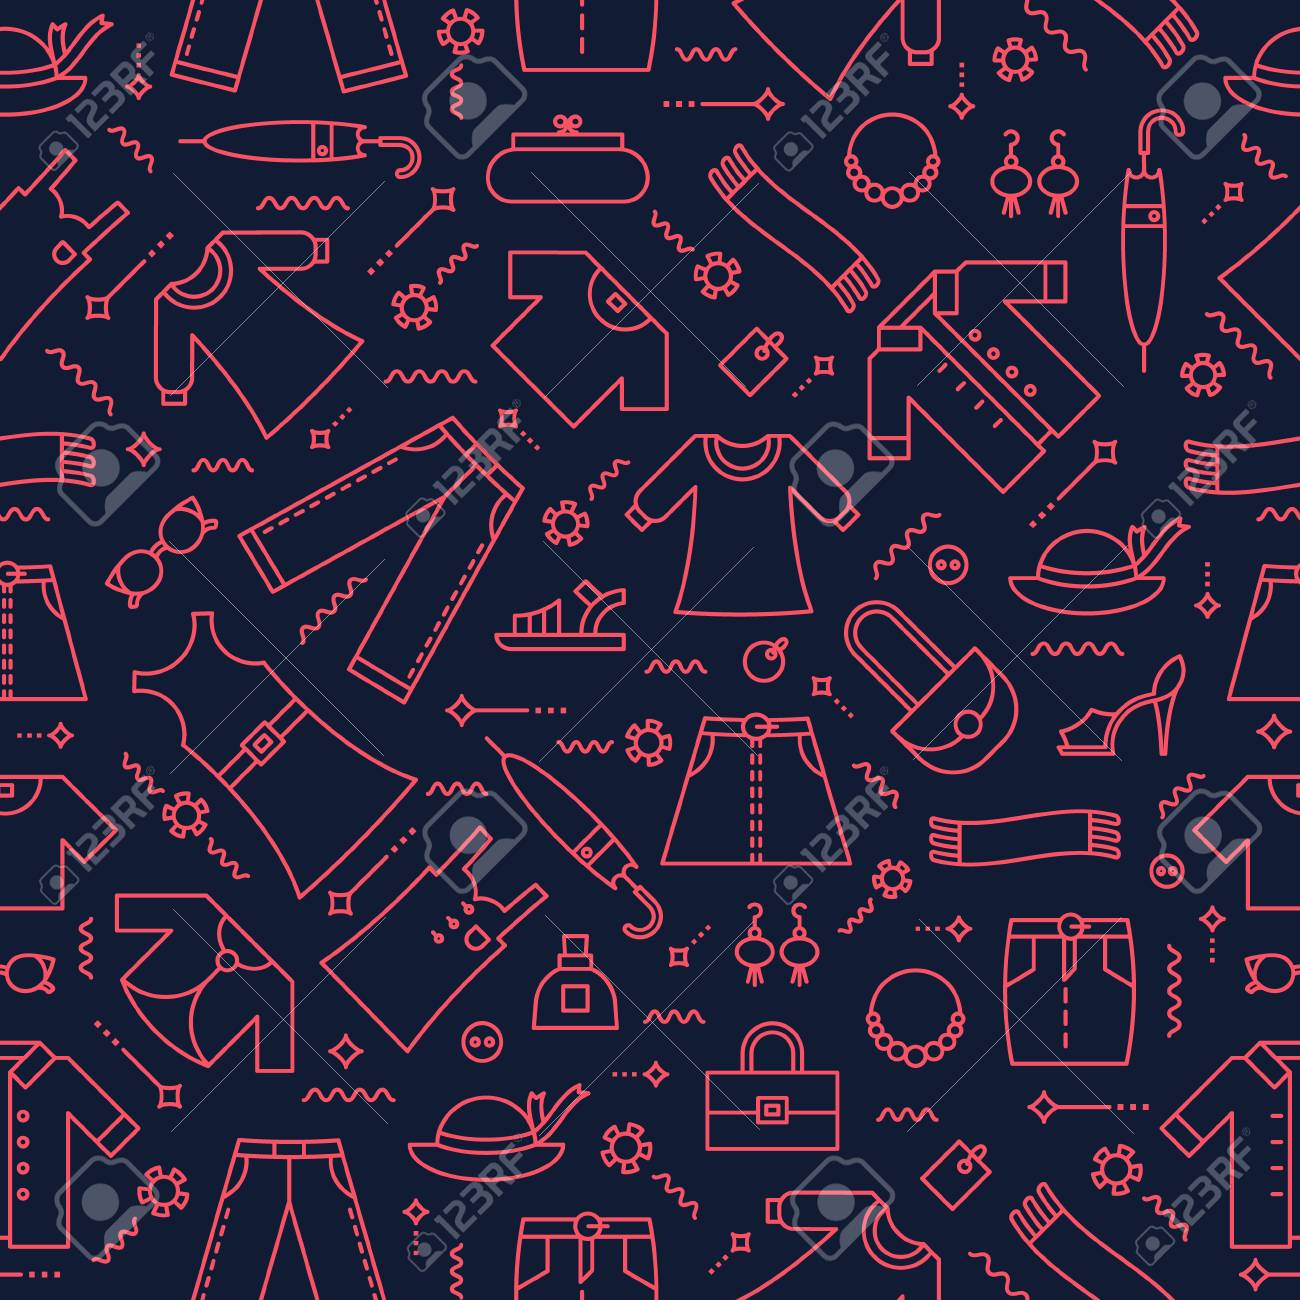 Editable Vector Seamless Pattern Women S Clothing Background Royalty Free Cliparts Vectors And Stock Illustration Image 94544374